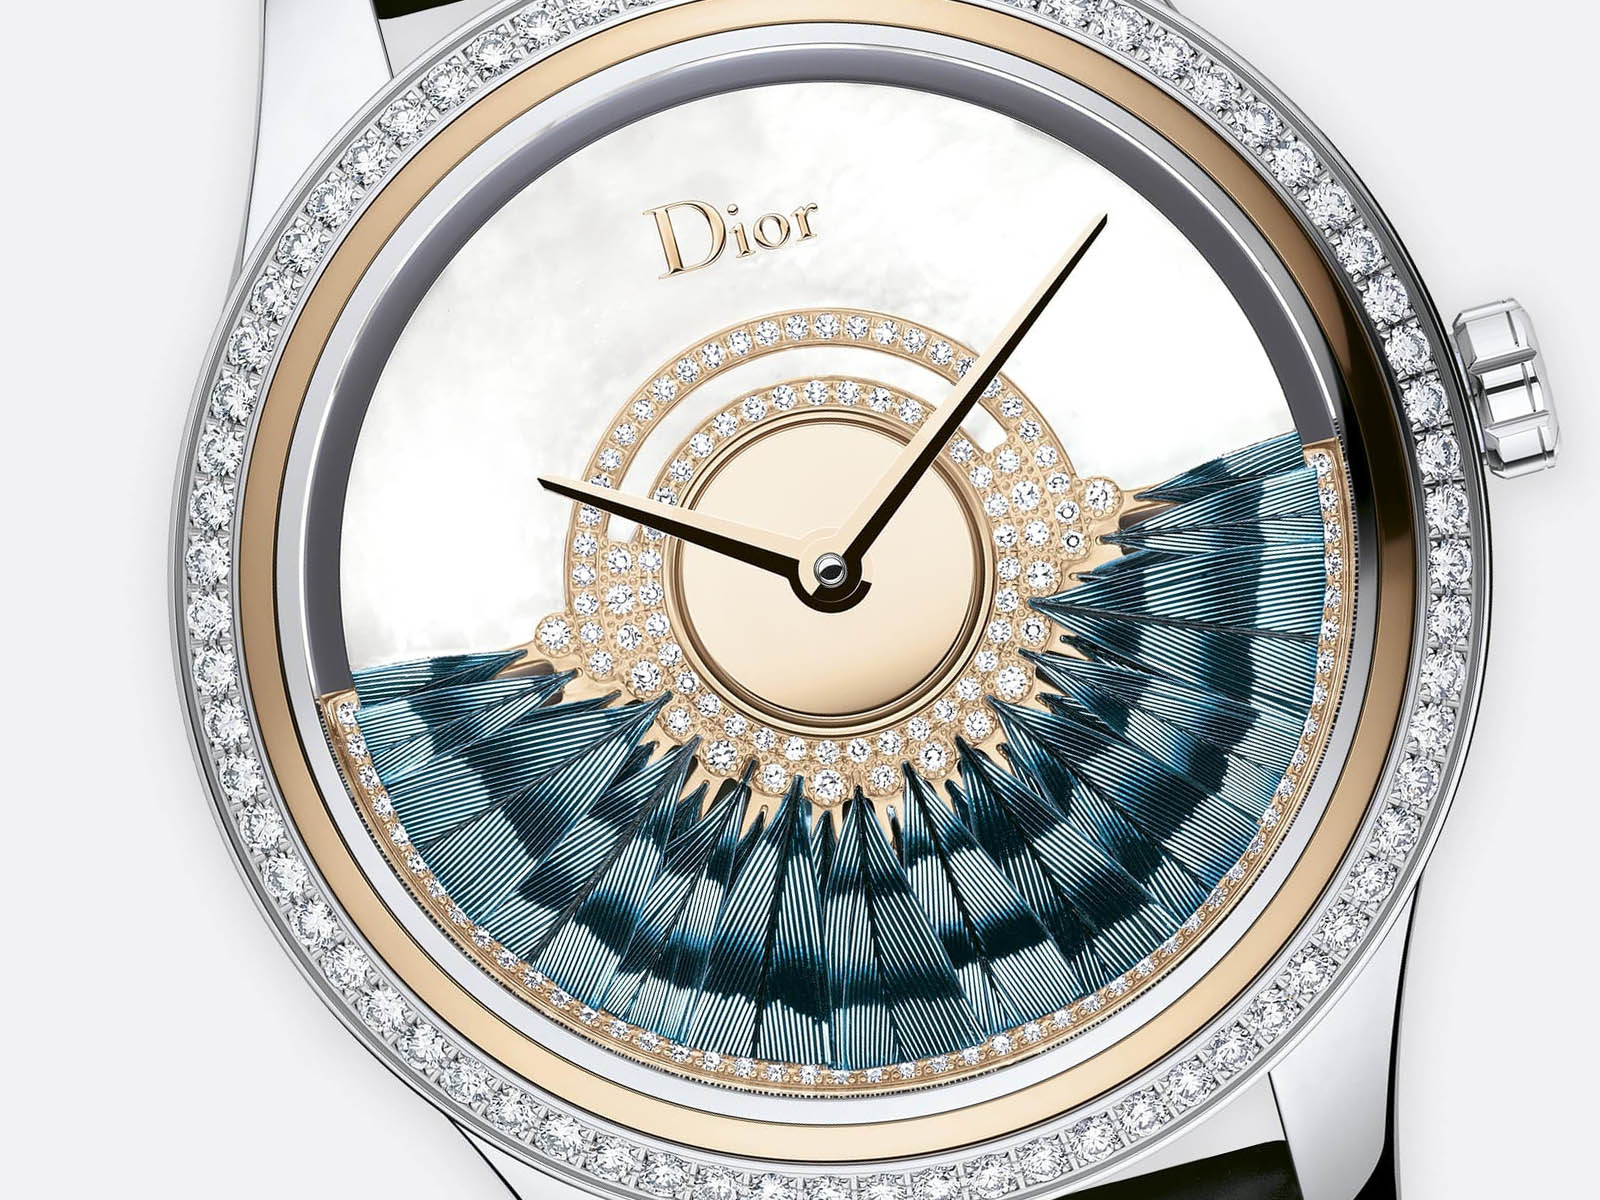 cd153b2x1003-0000-dior-grand-bal-ruban-1.jpg